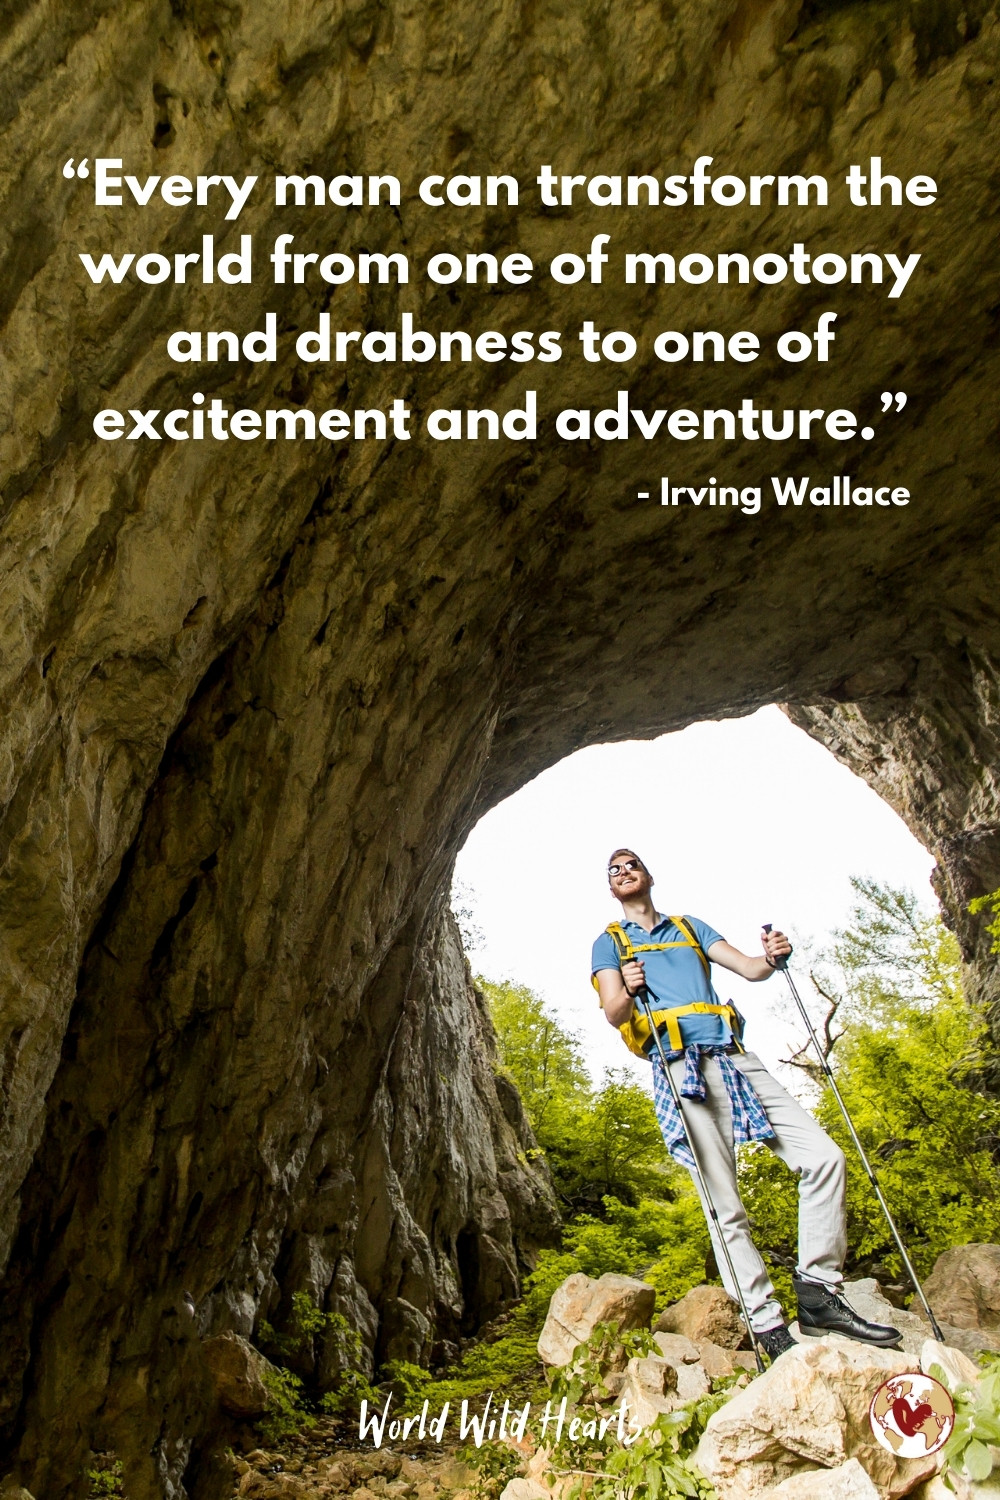 Adventure quote for traveling people